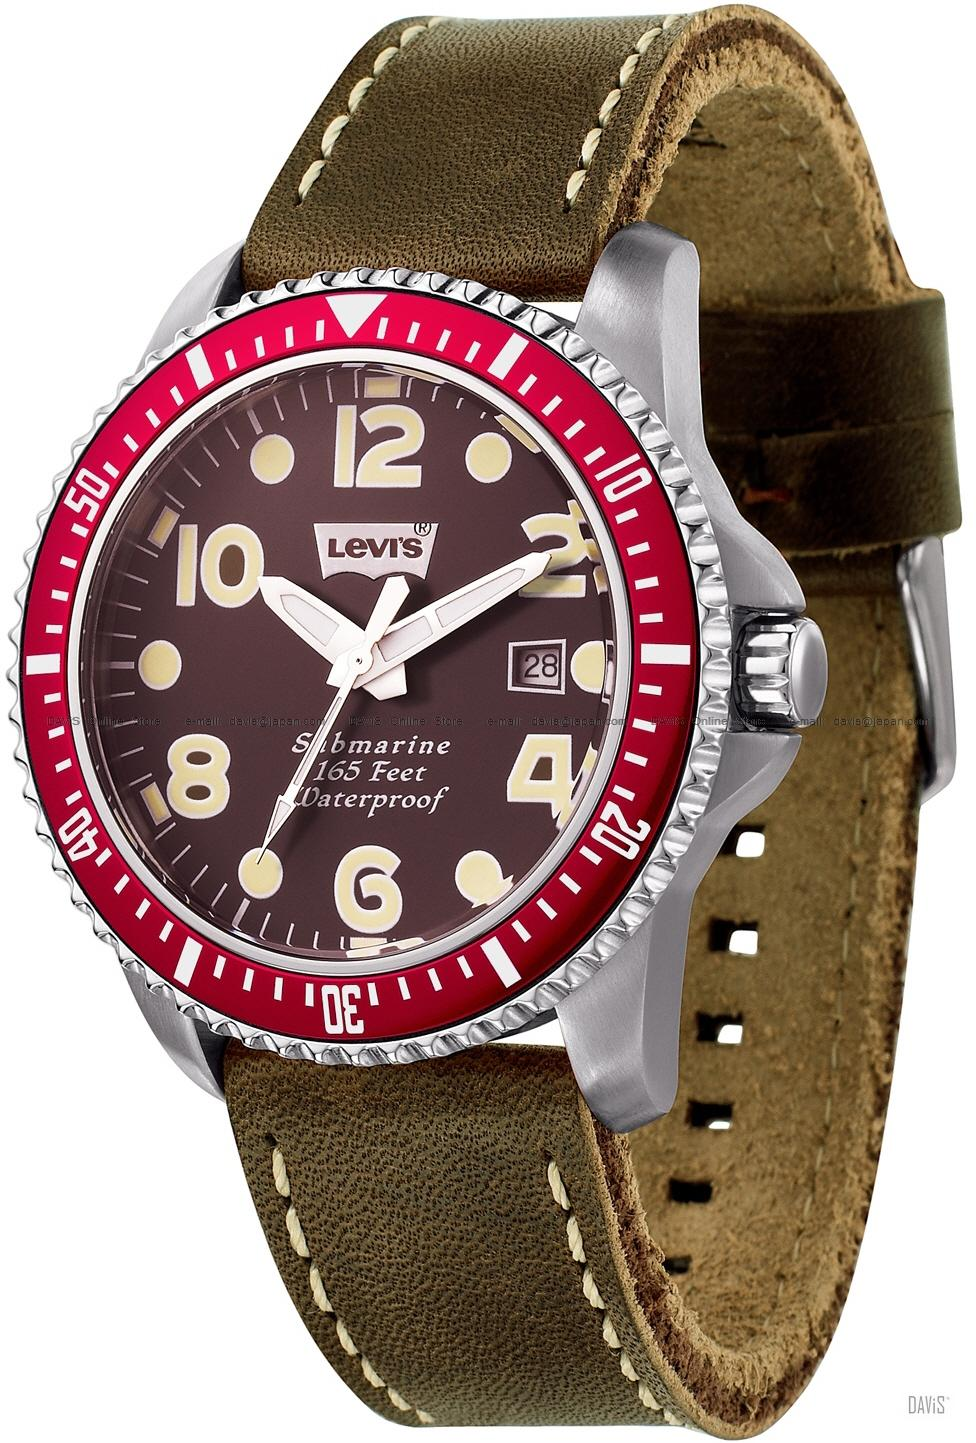 LEVI'S TIME LTJ0202 CORE analog submarine date leather strap brown